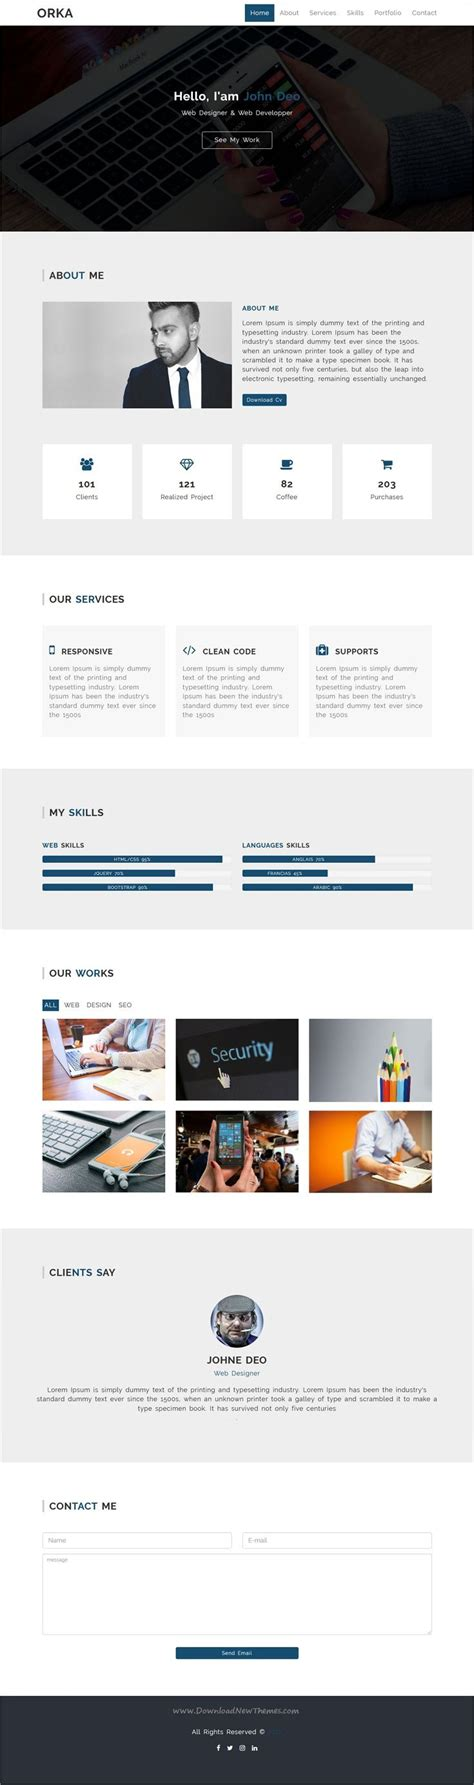 bootstrap templates for ngo 78 images about web design ideas on pinterest joomla